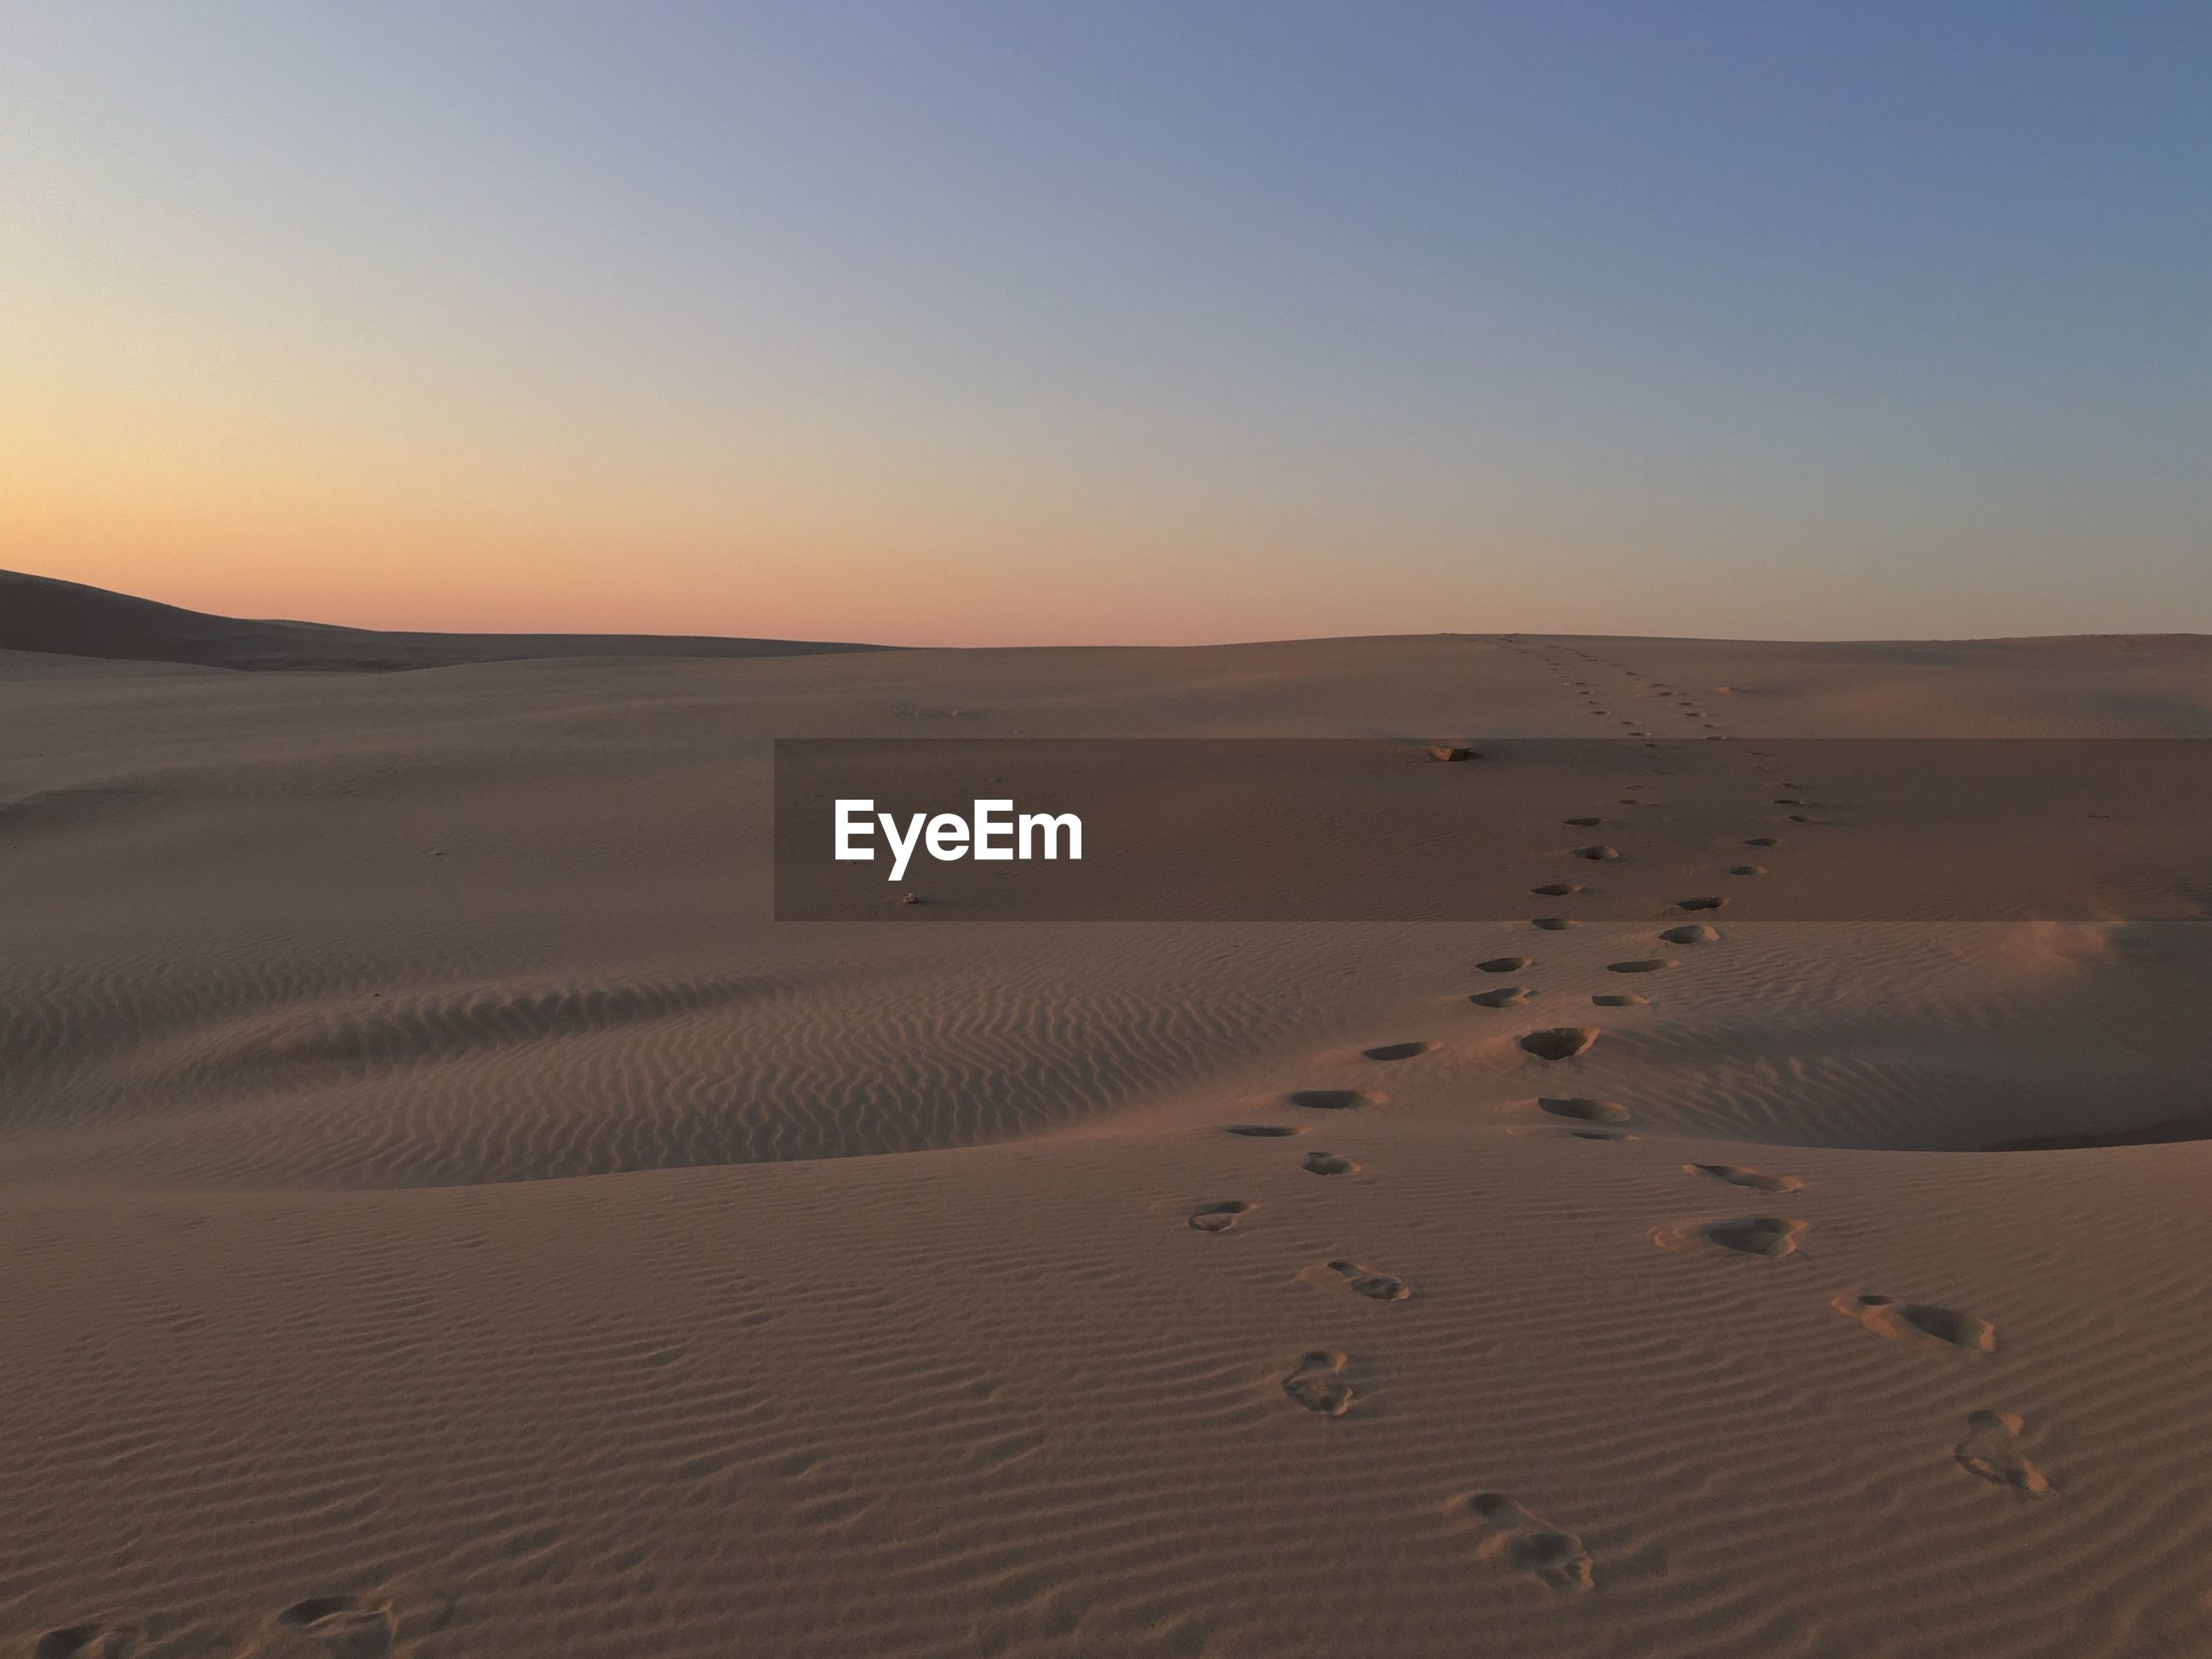 Footprints on sand dunes against clear sky during sunset at port stephens